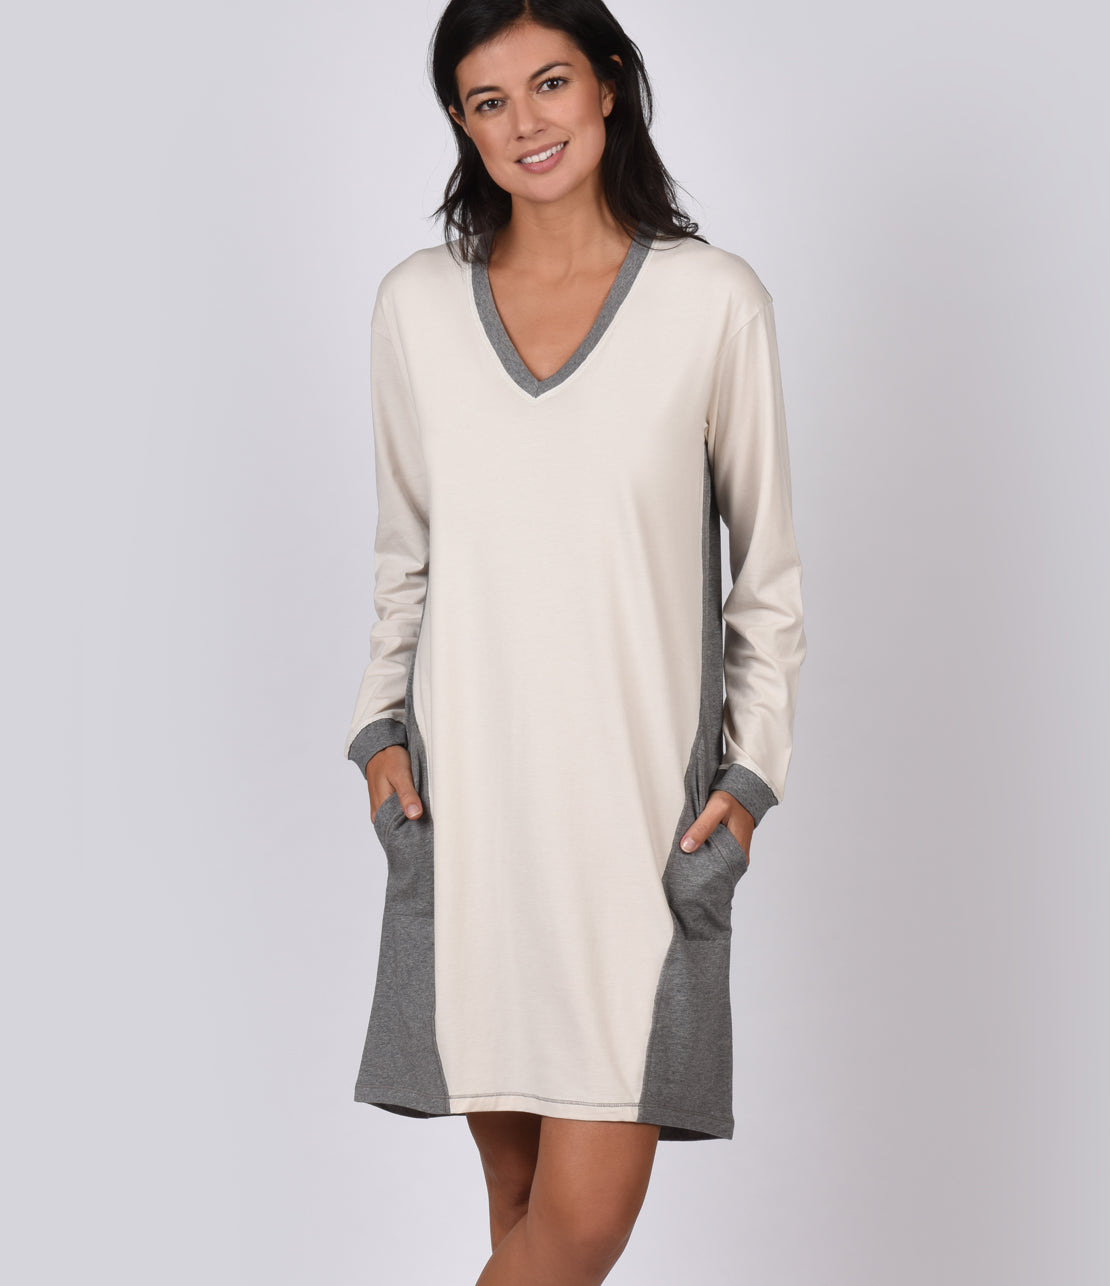 Cotton Essentials Sleepshirt